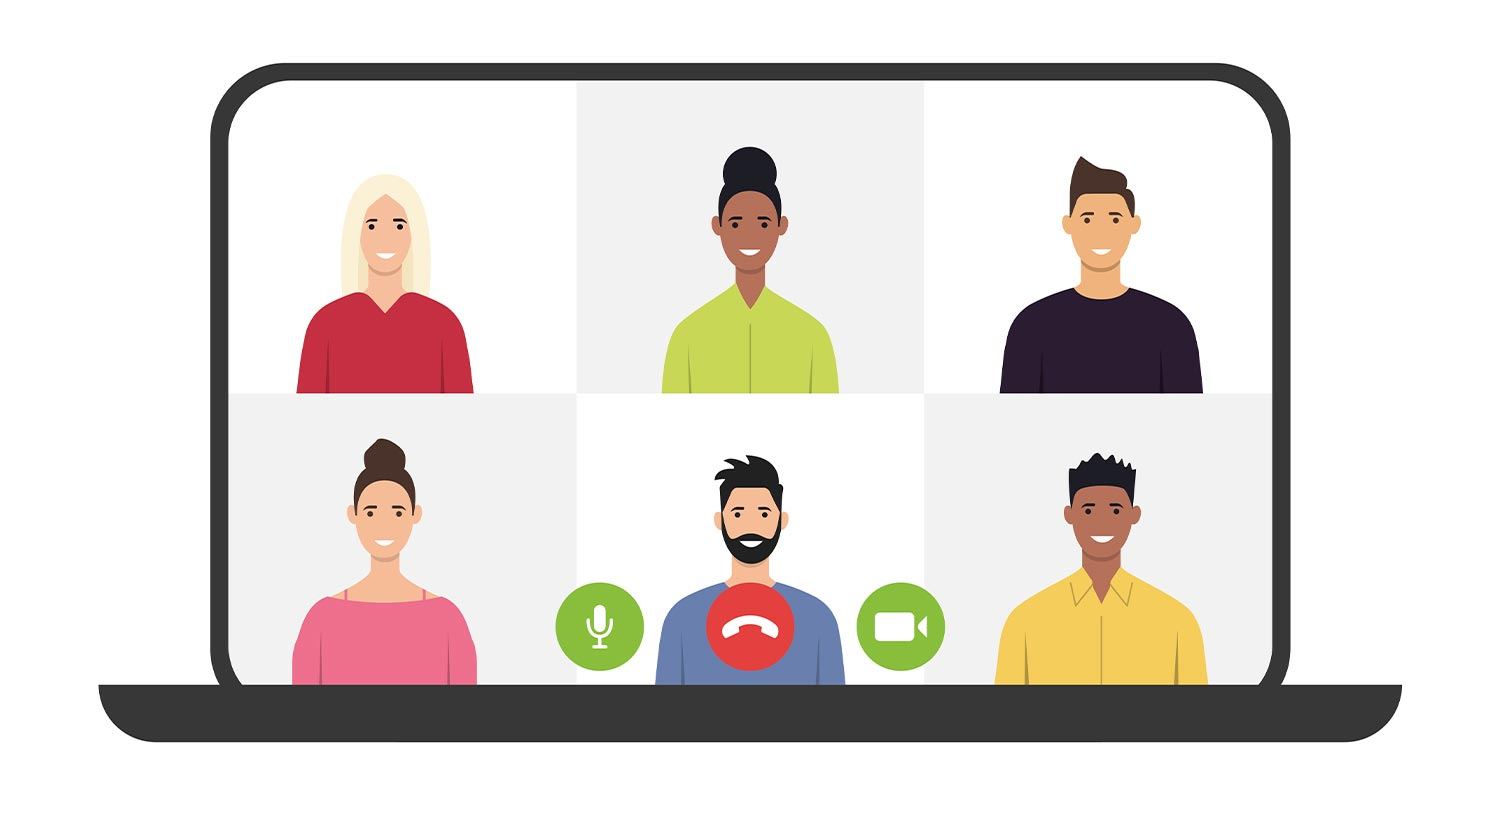 2021 Work from home & diversity trends in the HR workplace